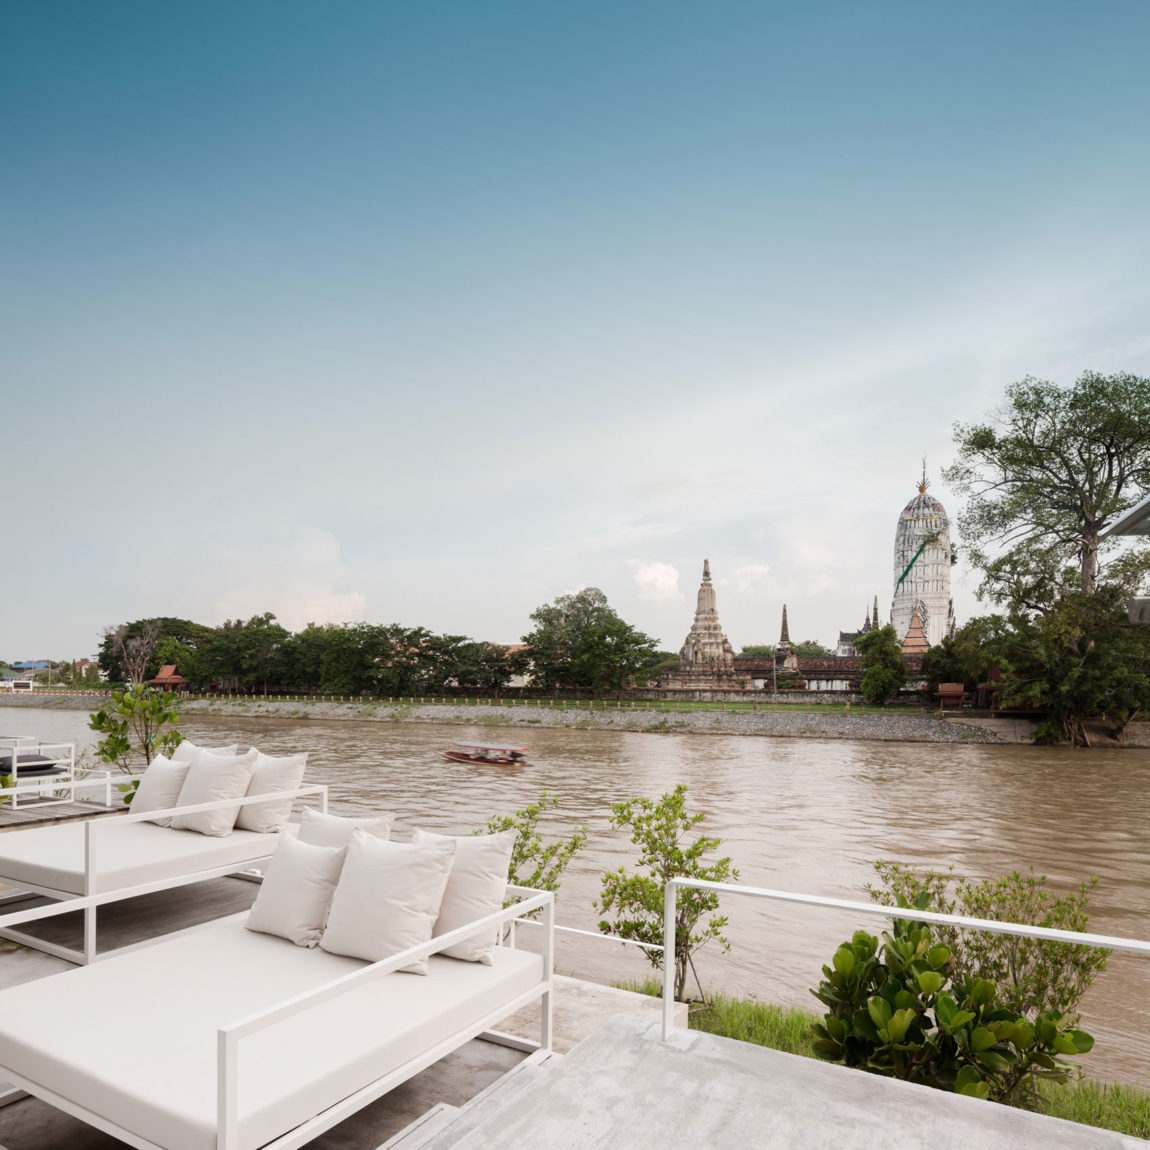 Sala Ayutthaya Hotel by Onion (2)